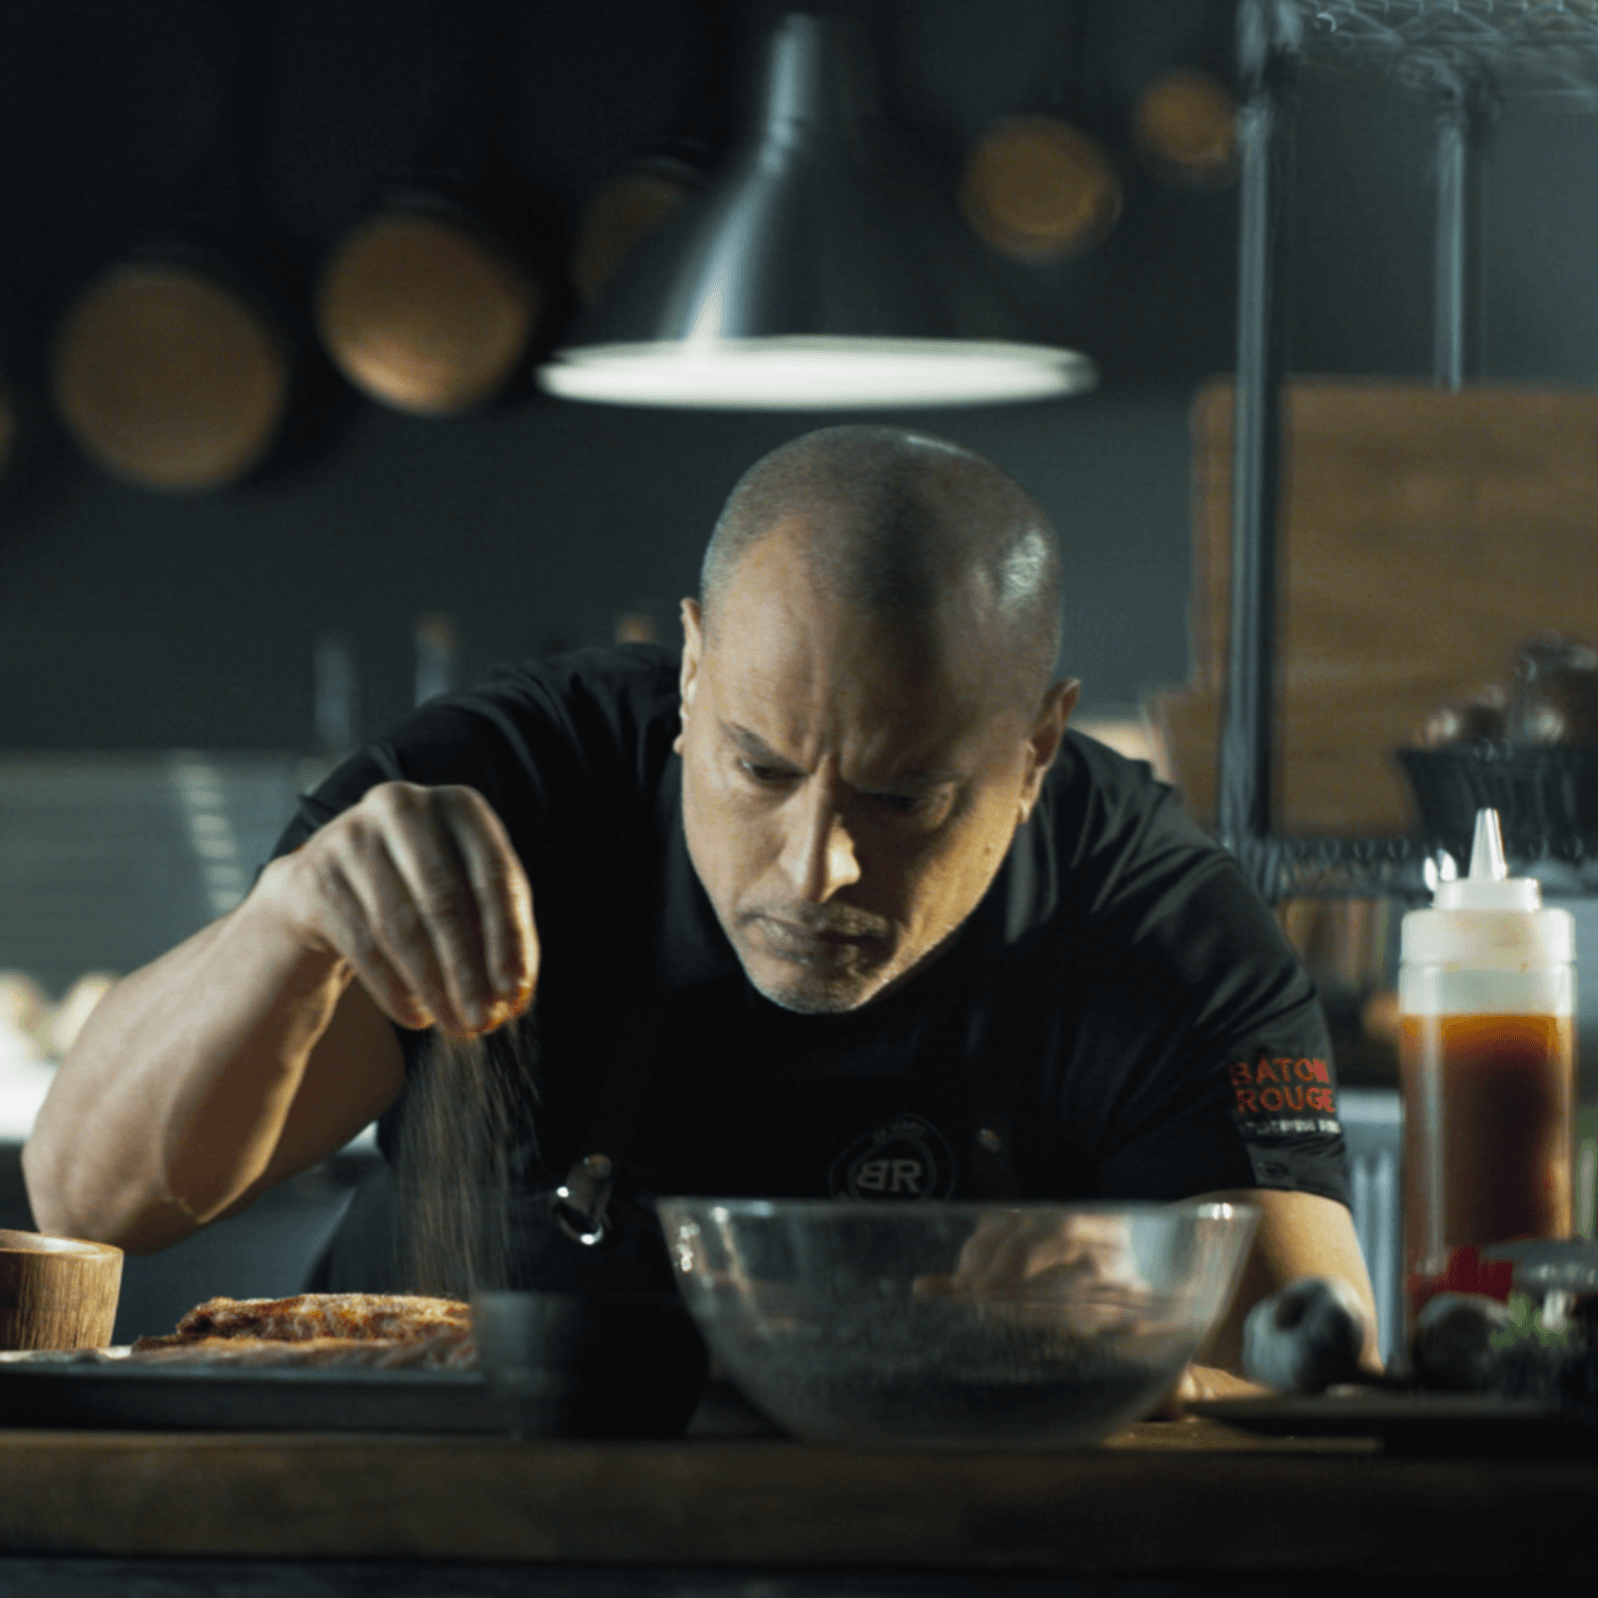 white man sprinkling spices on ribs in professional kitchen looking serious and focused by Mathieu Levesque for Baton Rouge